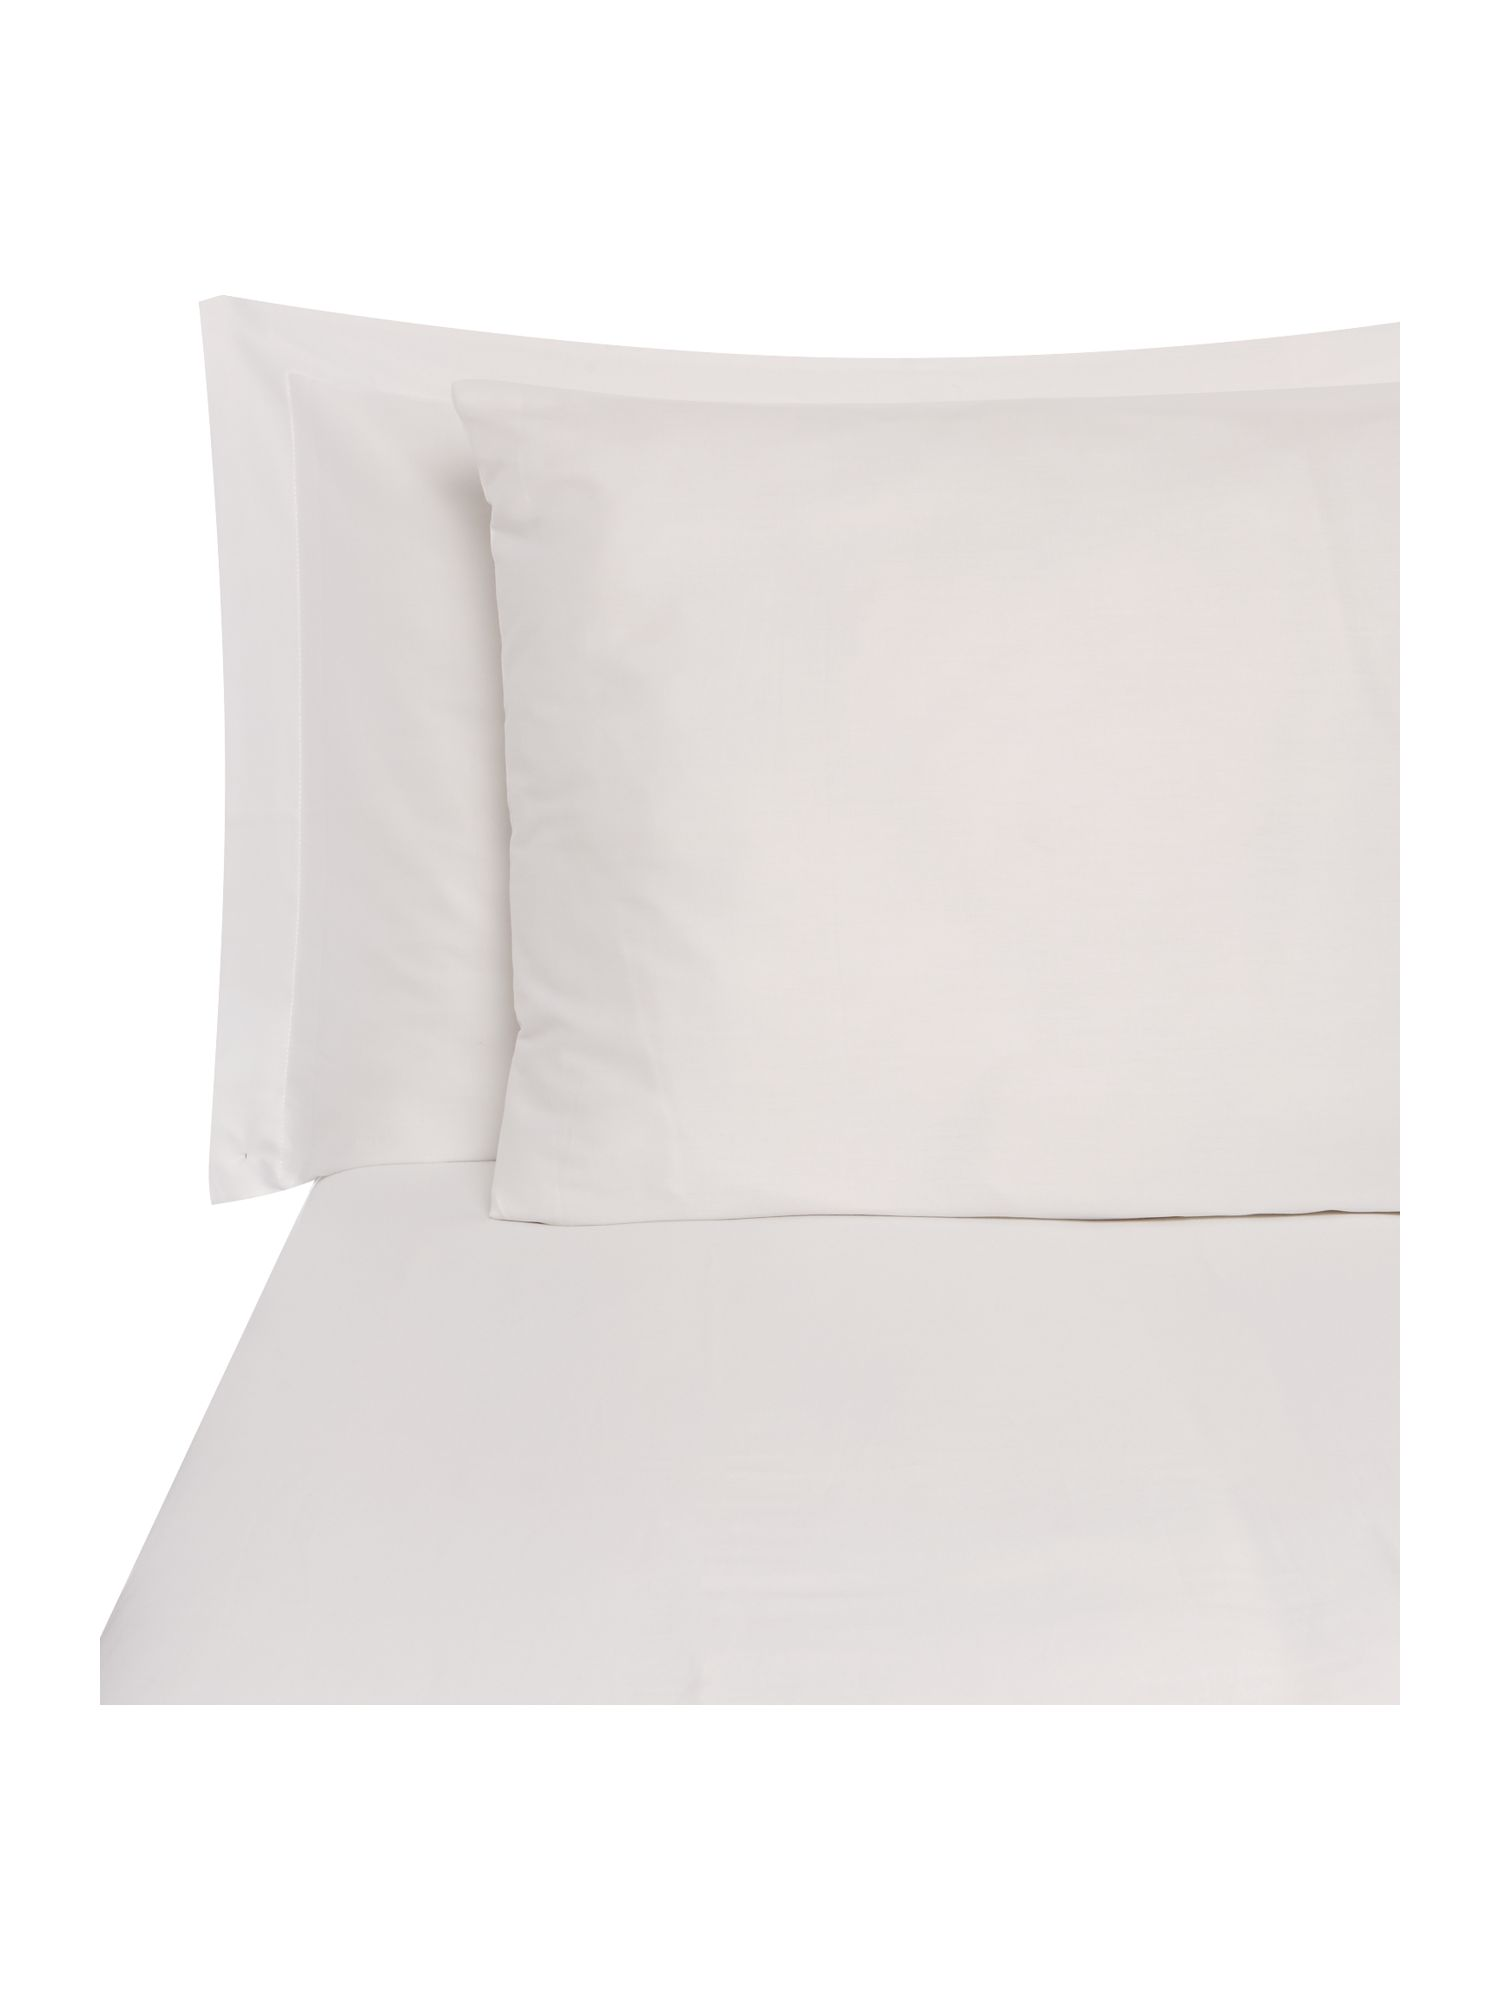 White oxford edge pillow case pair